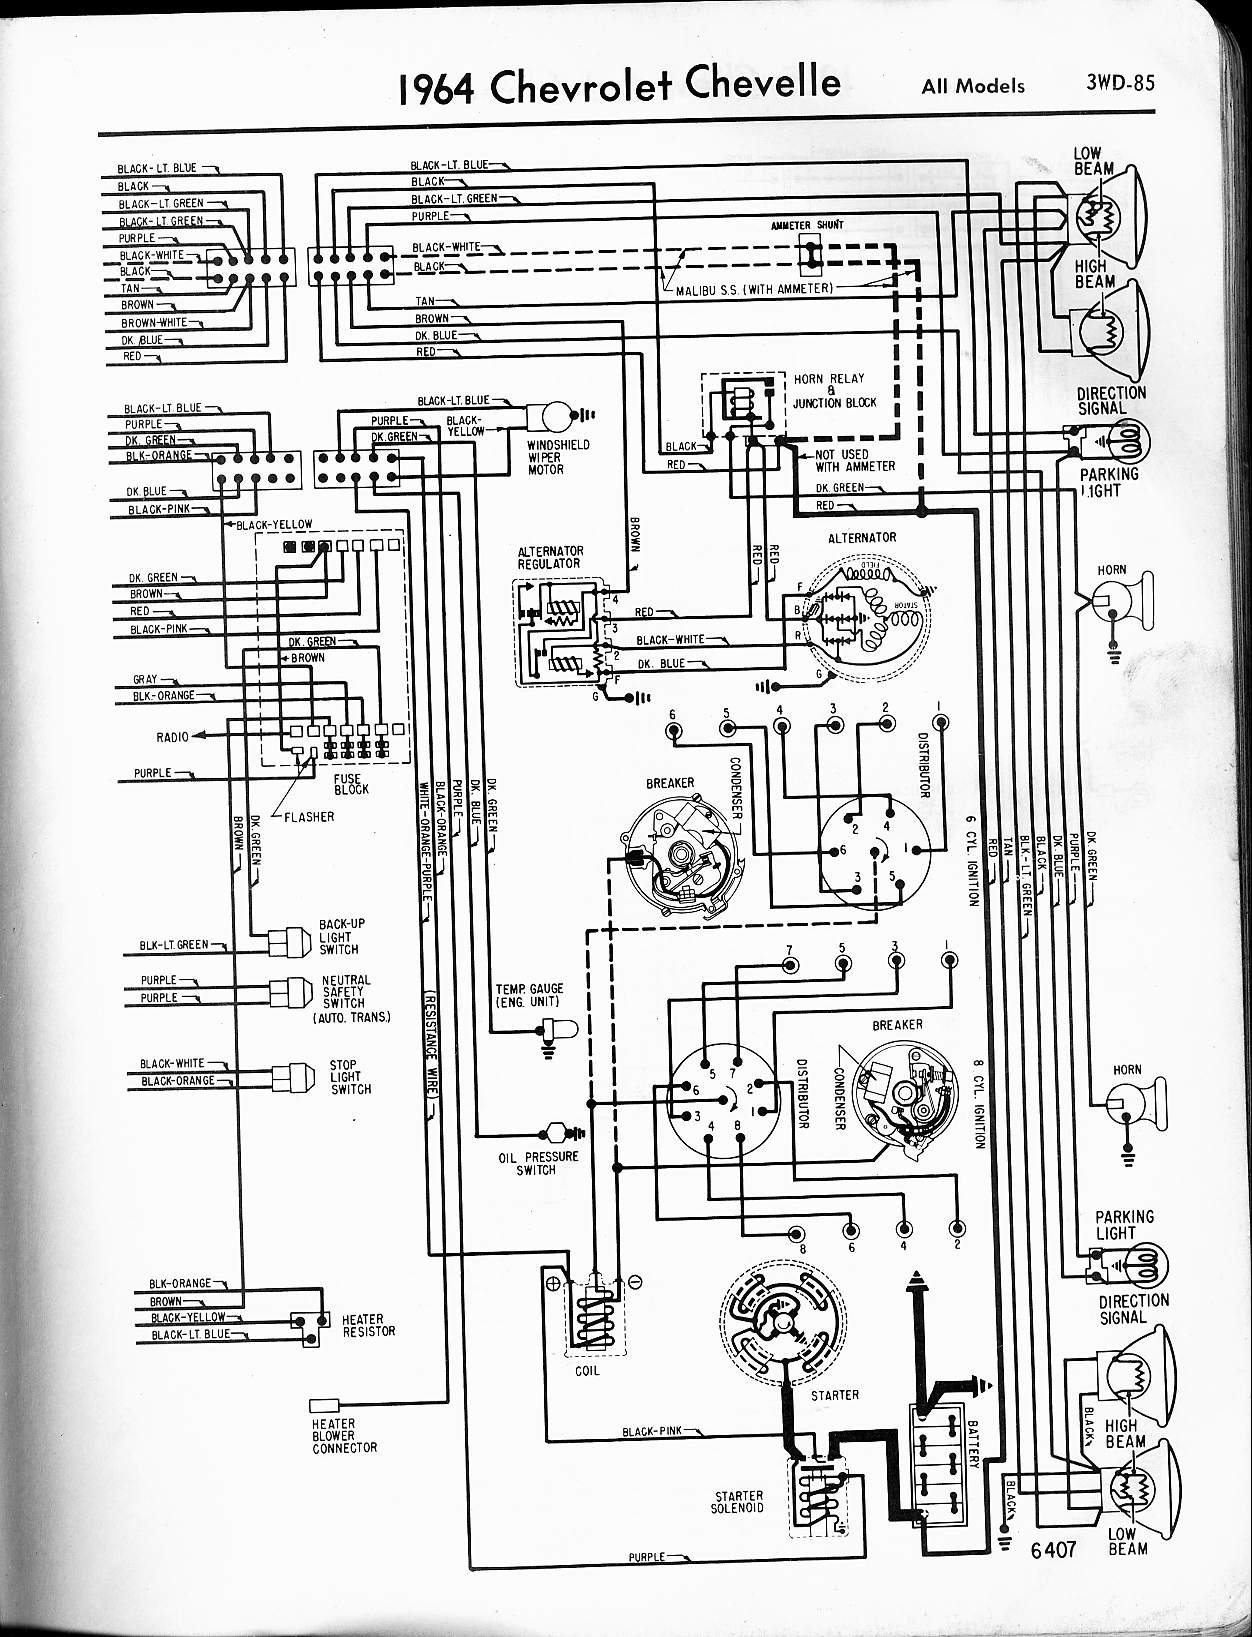 66 Chevelle Wiring Harness Diagram Third Level 1968 Camaro 1966 Dash For Completed 68 1965